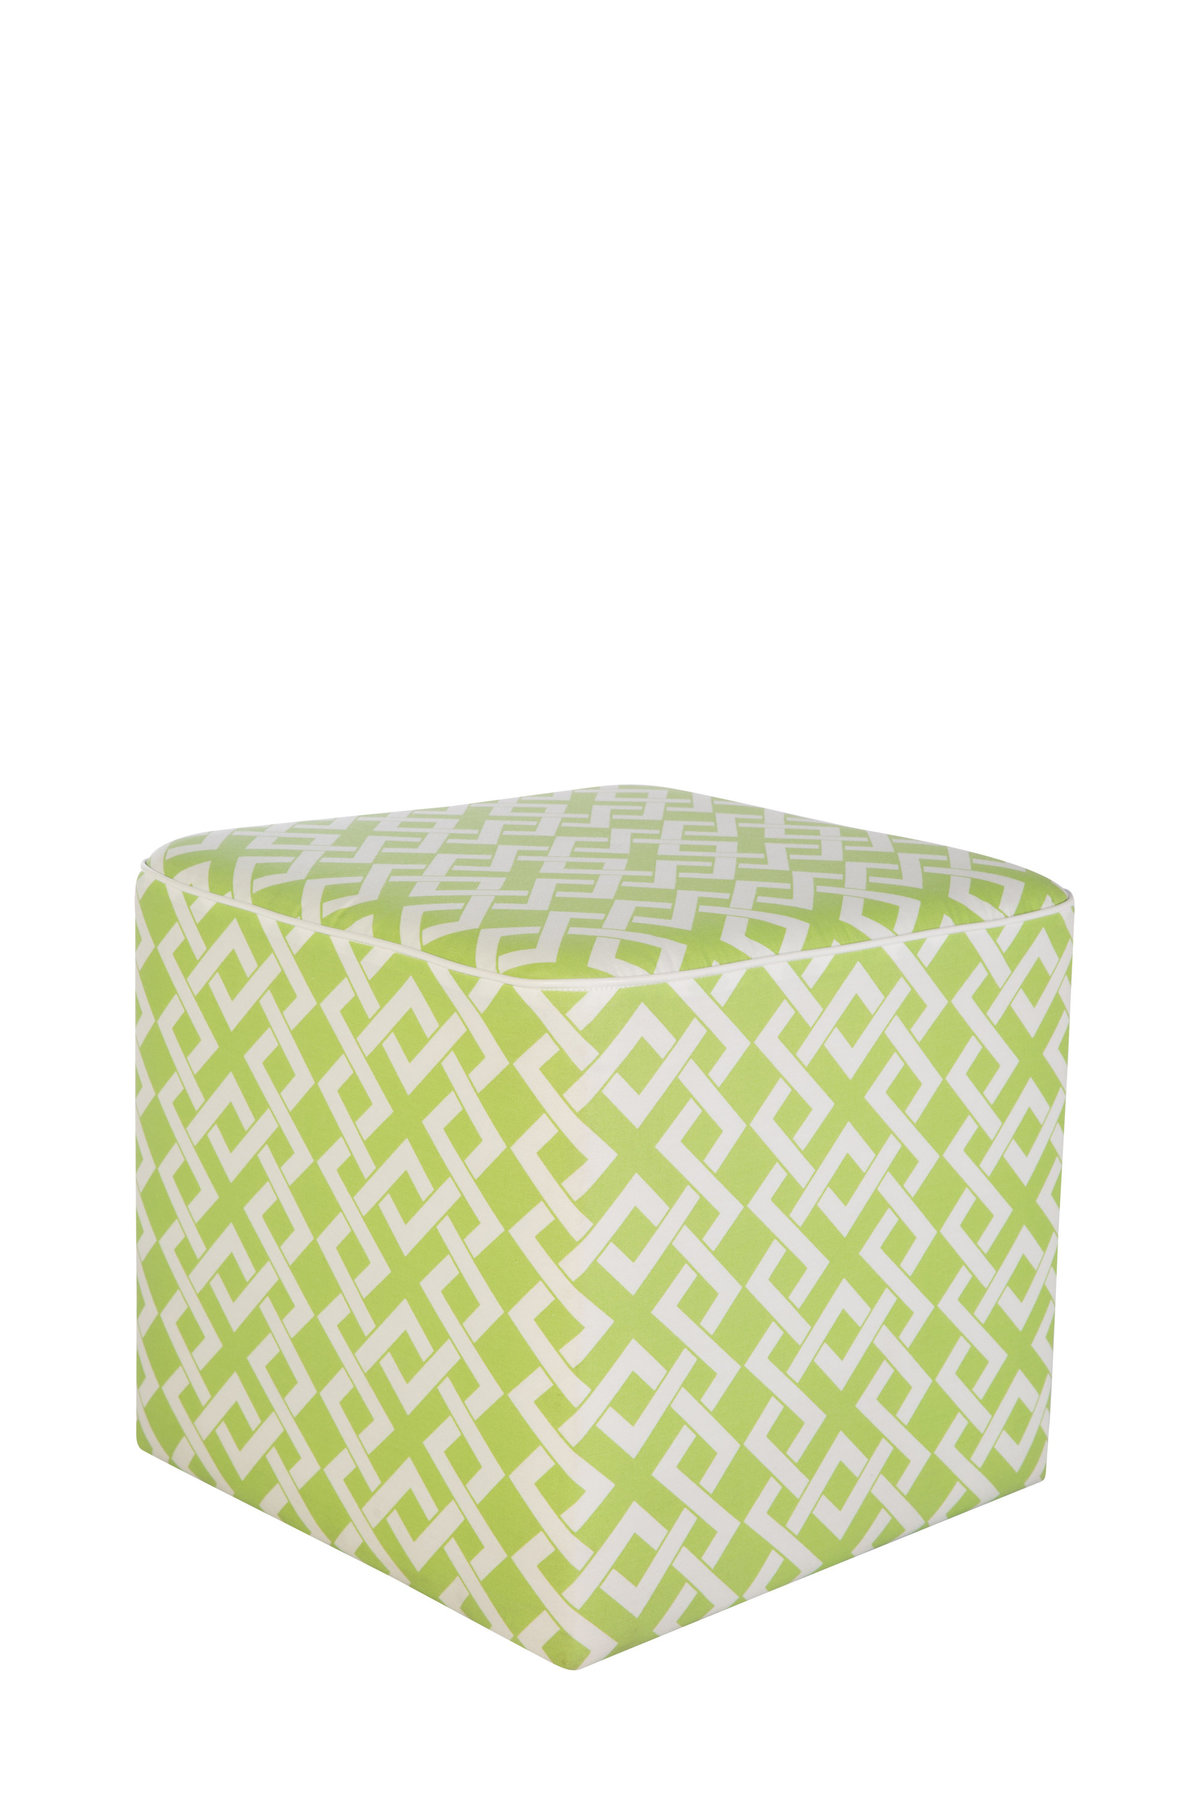 20'' x 20'' Lime Green Cube Ottoman